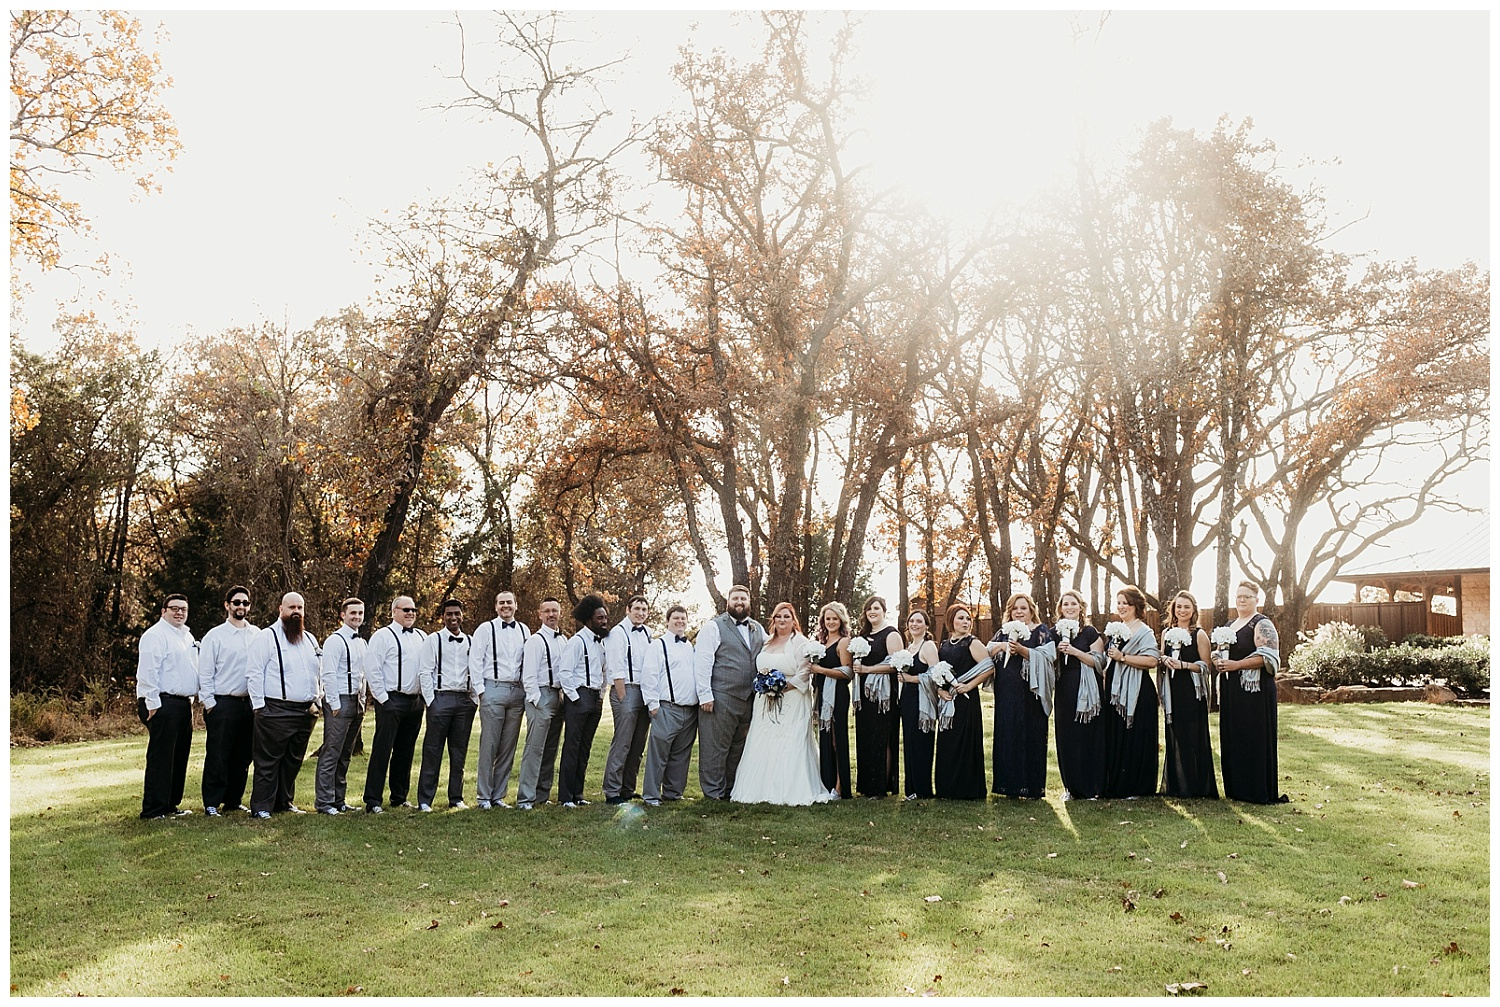 Large Bridal Party with 22 people outside at sunset at The Springs in Blanchard, Oklahoma.